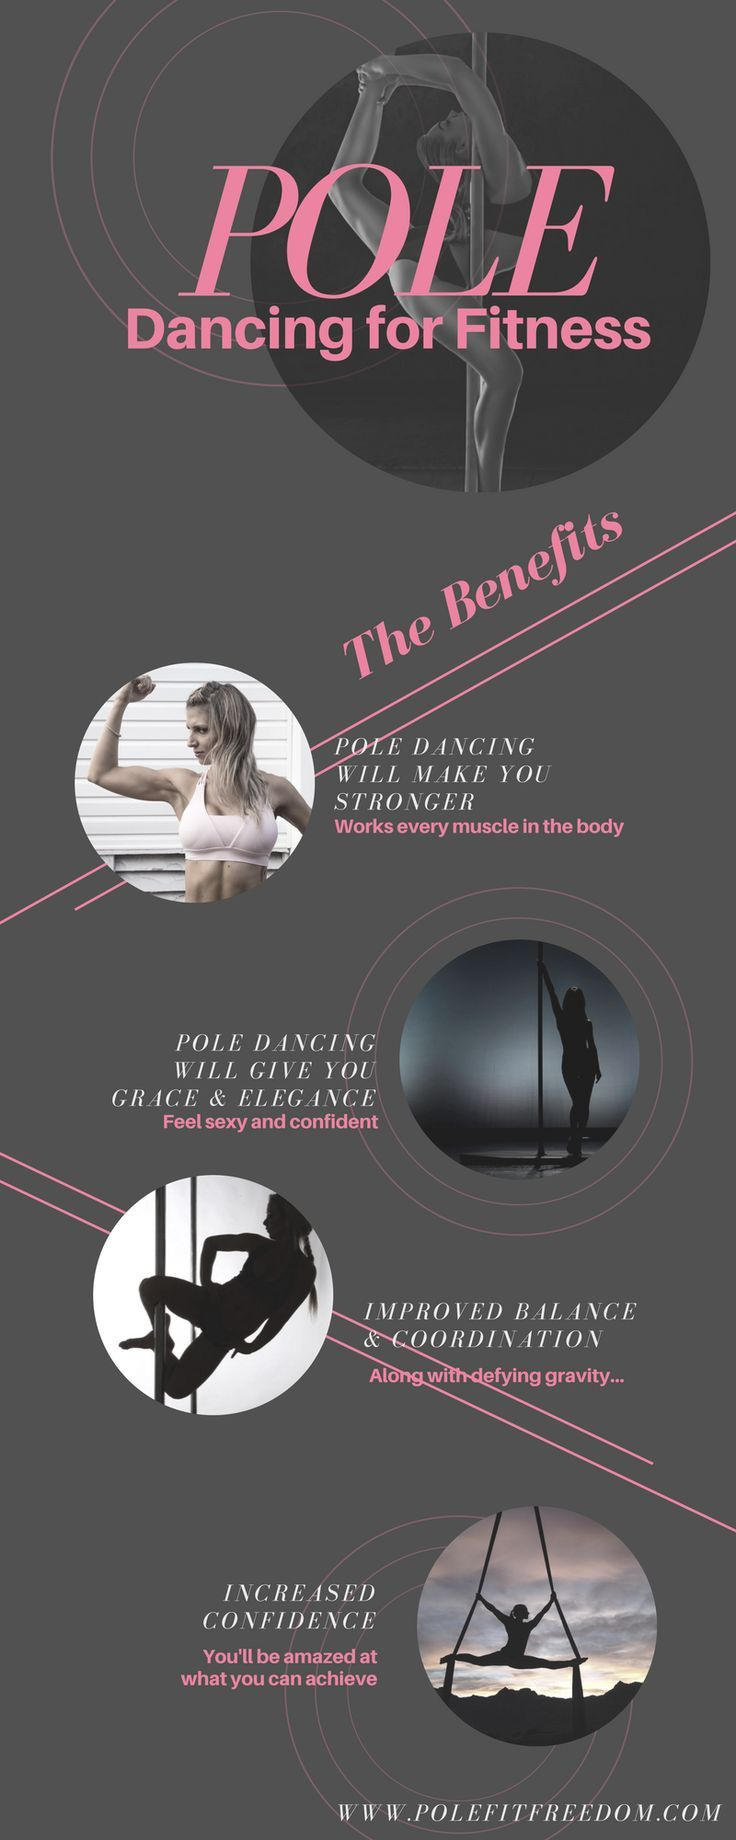 What Does Pole Dancing Do To Your Body? (With images